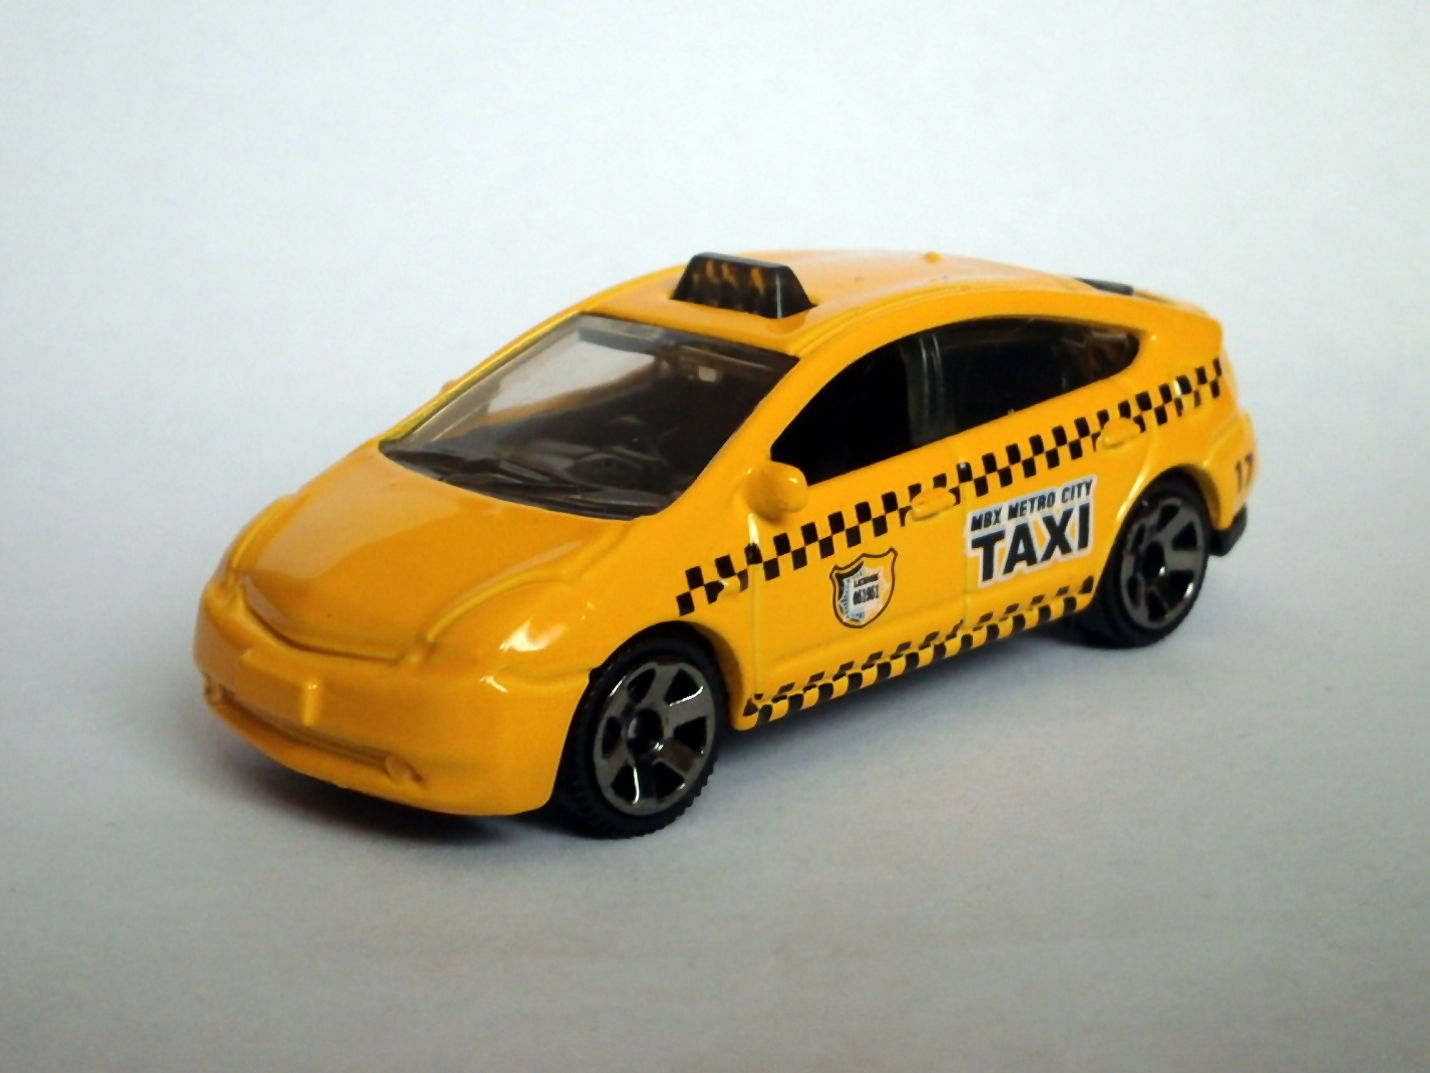 toyota prius taxi matchbox cars wiki fandom powered by wikia. Black Bedroom Furniture Sets. Home Design Ideas